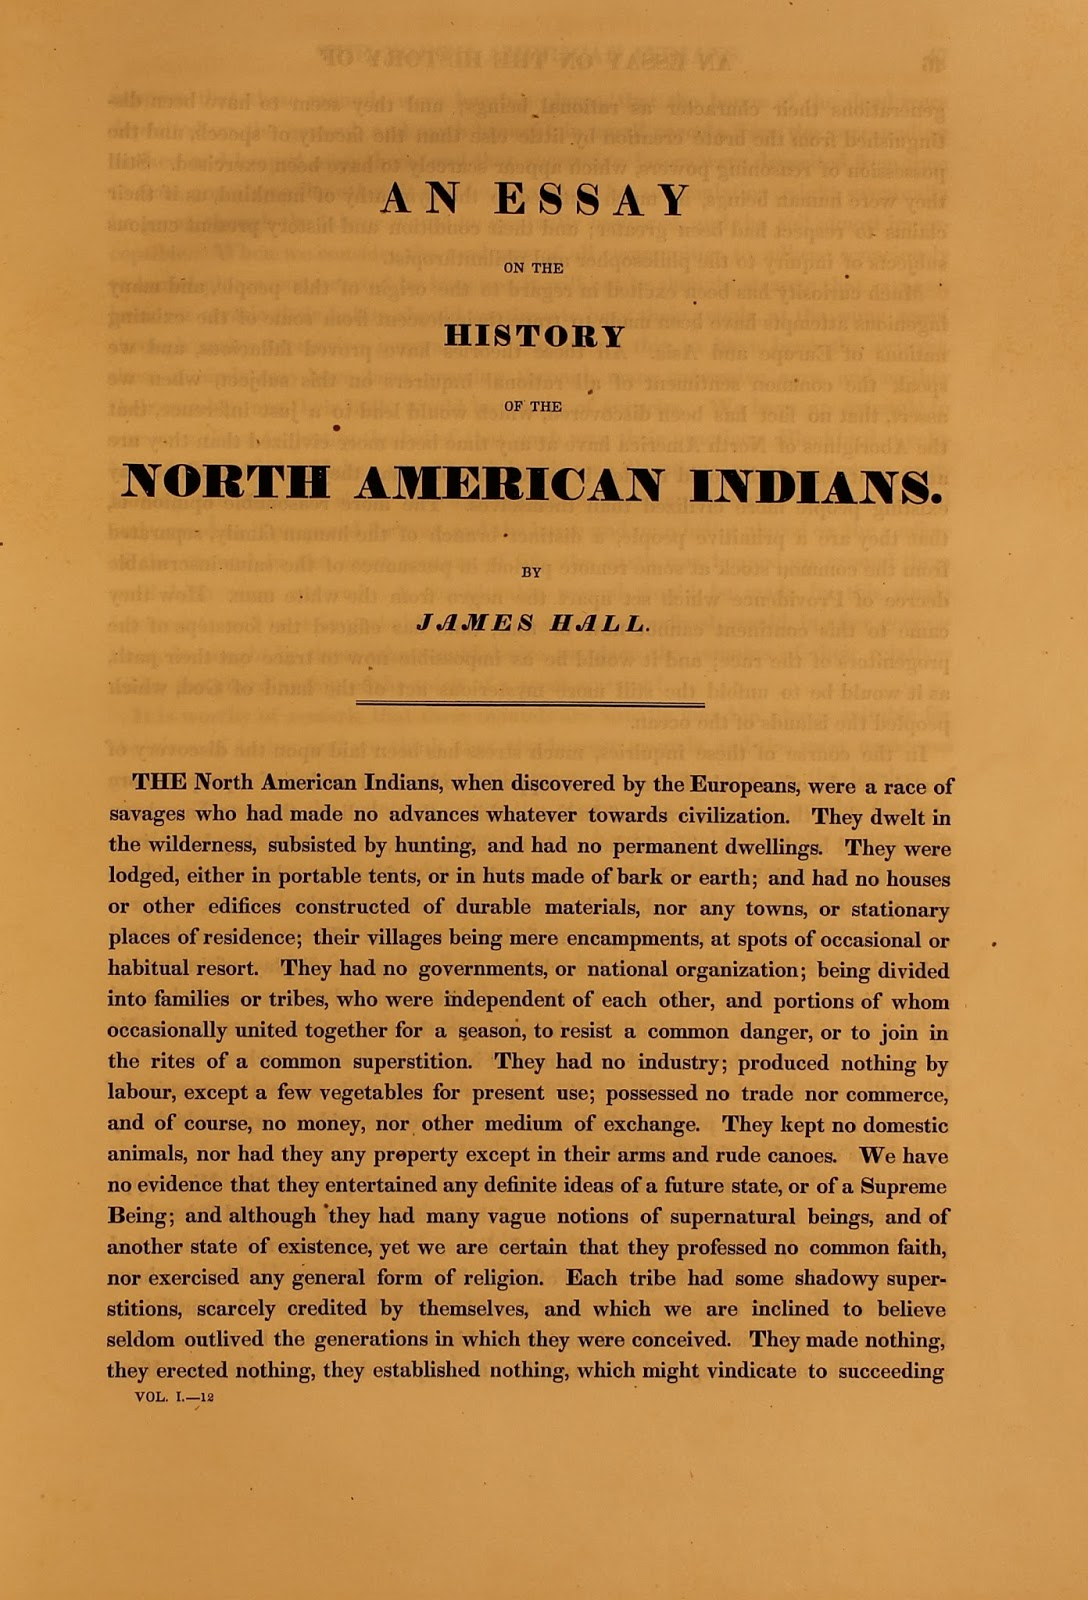 history the indian removal act essay To learn about the opposition to indian removal  journal of american history  in which she wrote not only of opposition to the indian removal act,  historians  have estimated that the number of oppositional articles, essays, and pamphlets.